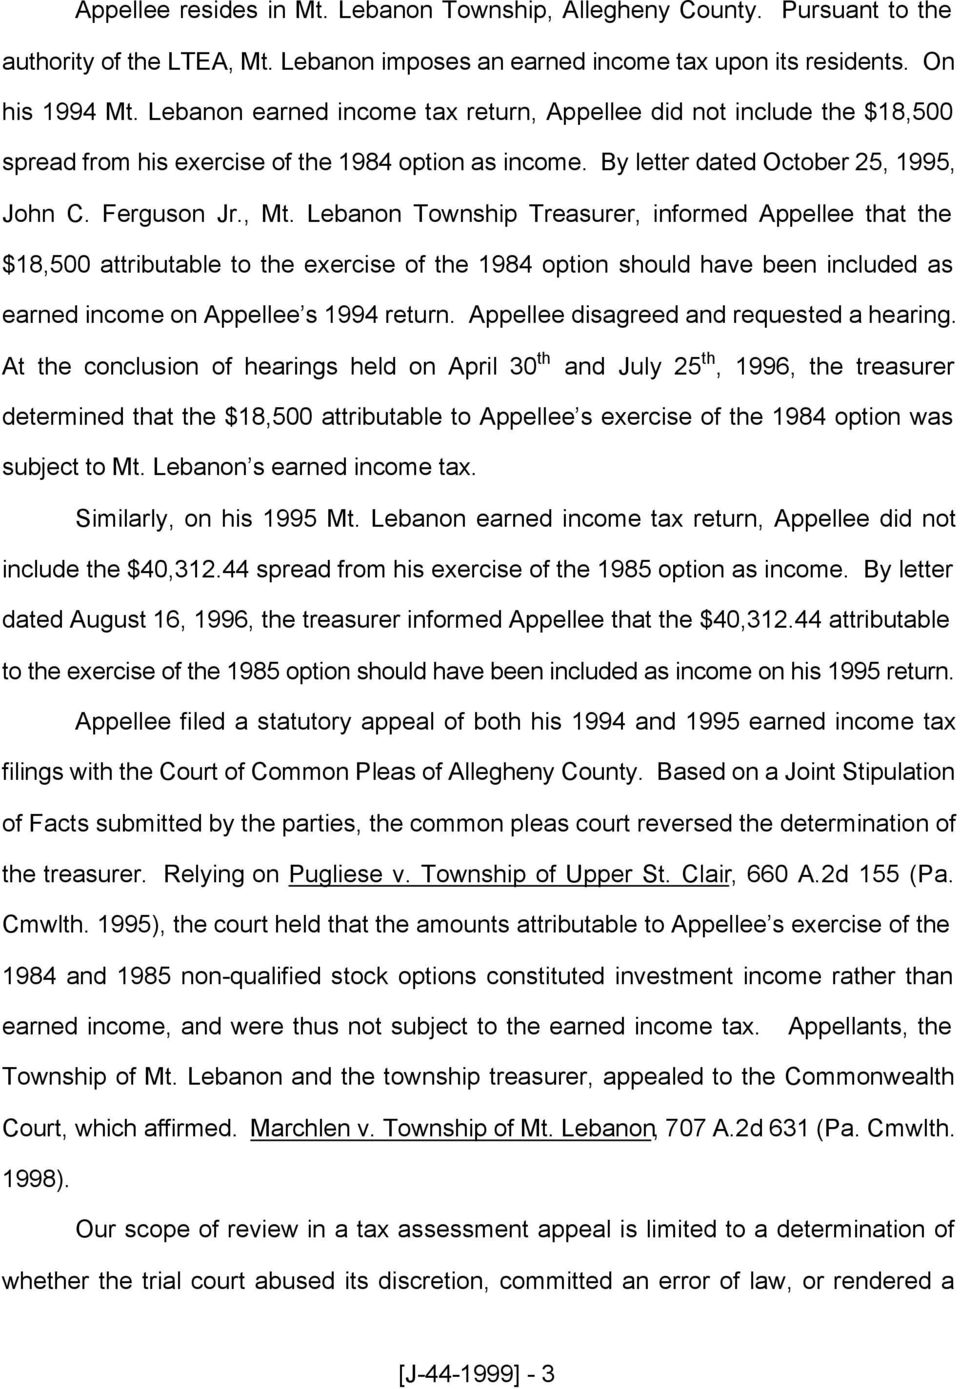 Lebanon Township Treasurer, informed Appellee that the $18,500 attributable to the exercise of the 1984 option should have been included as earned income on Appellee s 1994 return.